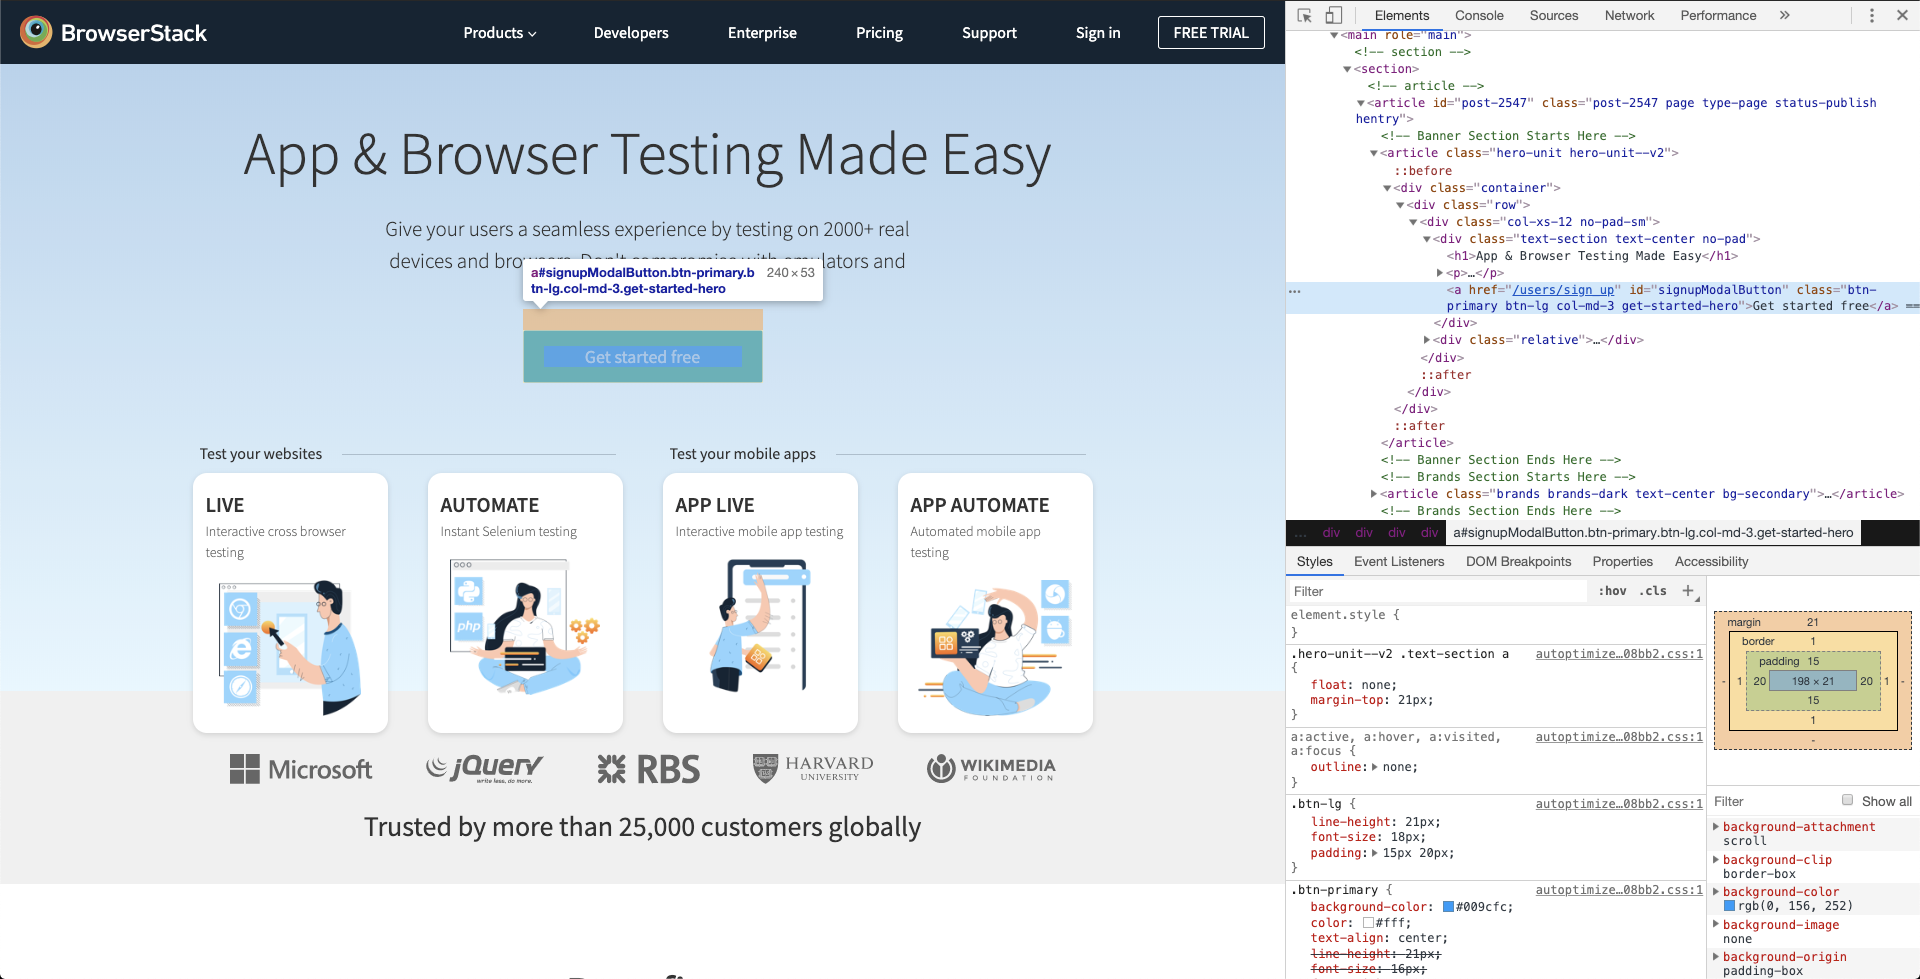 BrowserStack homepage with developer tools